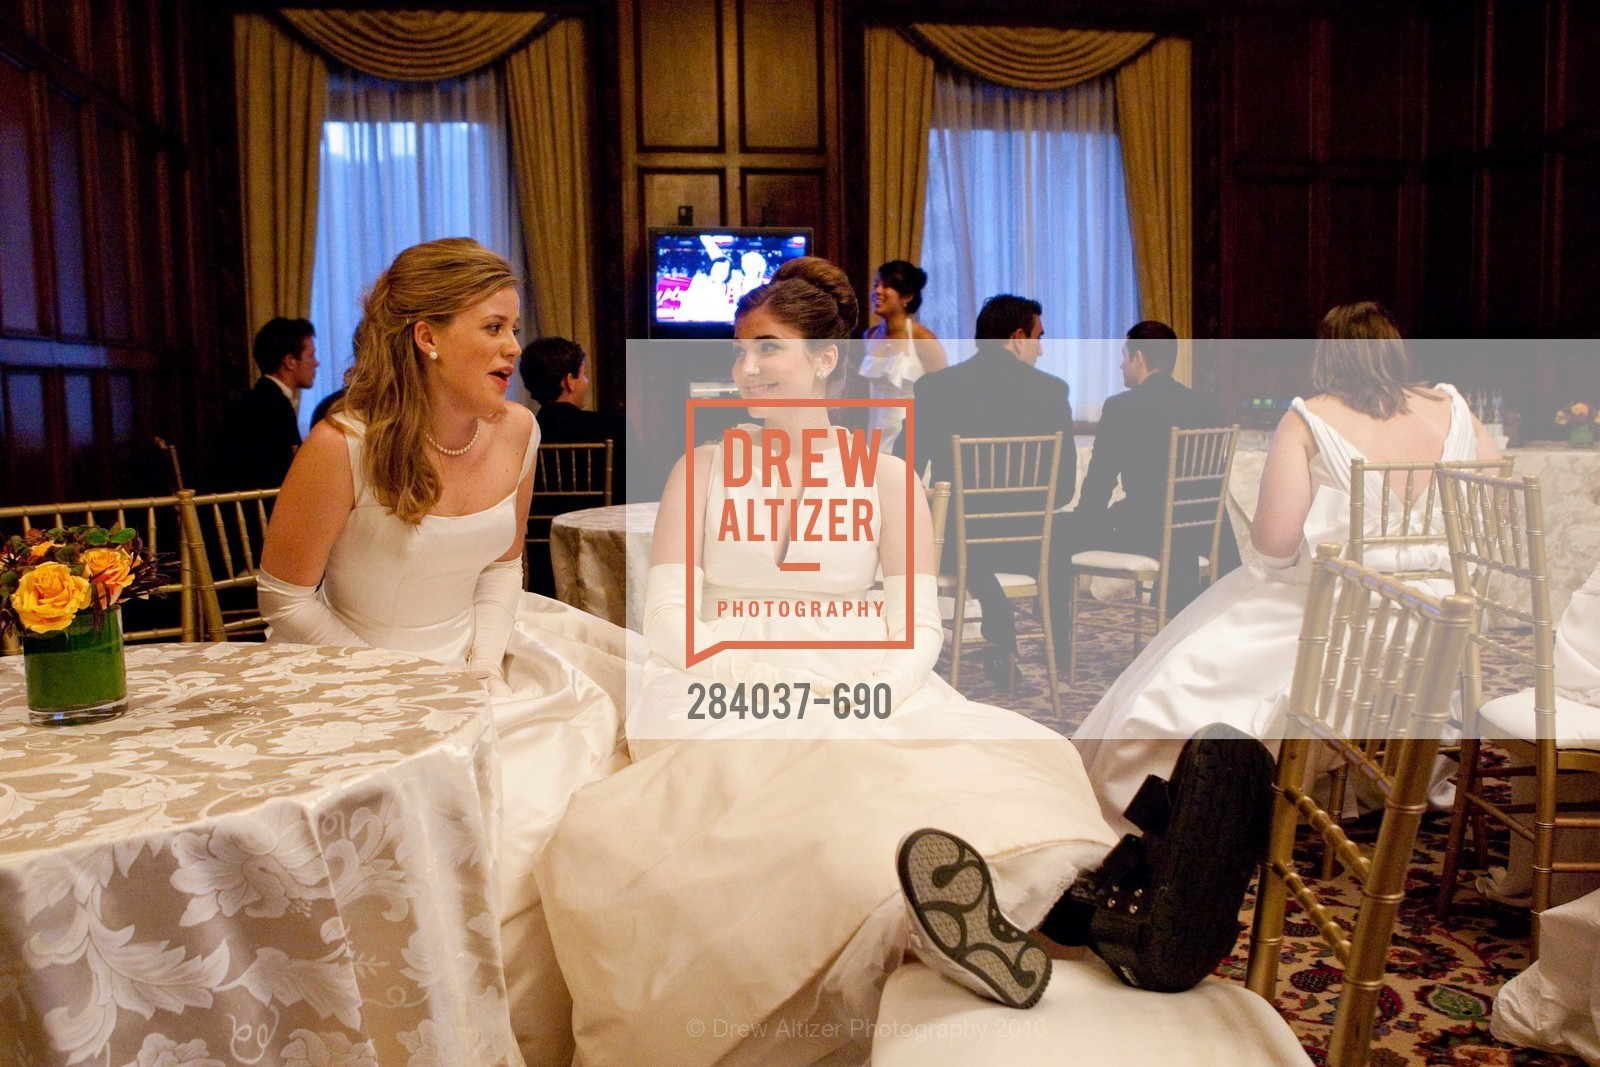 Averell Edmondson, Denise Rollandi, 2009 Debutante Ball, Unknown, July 4th, 2008,Drew Altizer, Drew Altizer Photography, full-service agency, private events, San Francisco photographer, photographer california